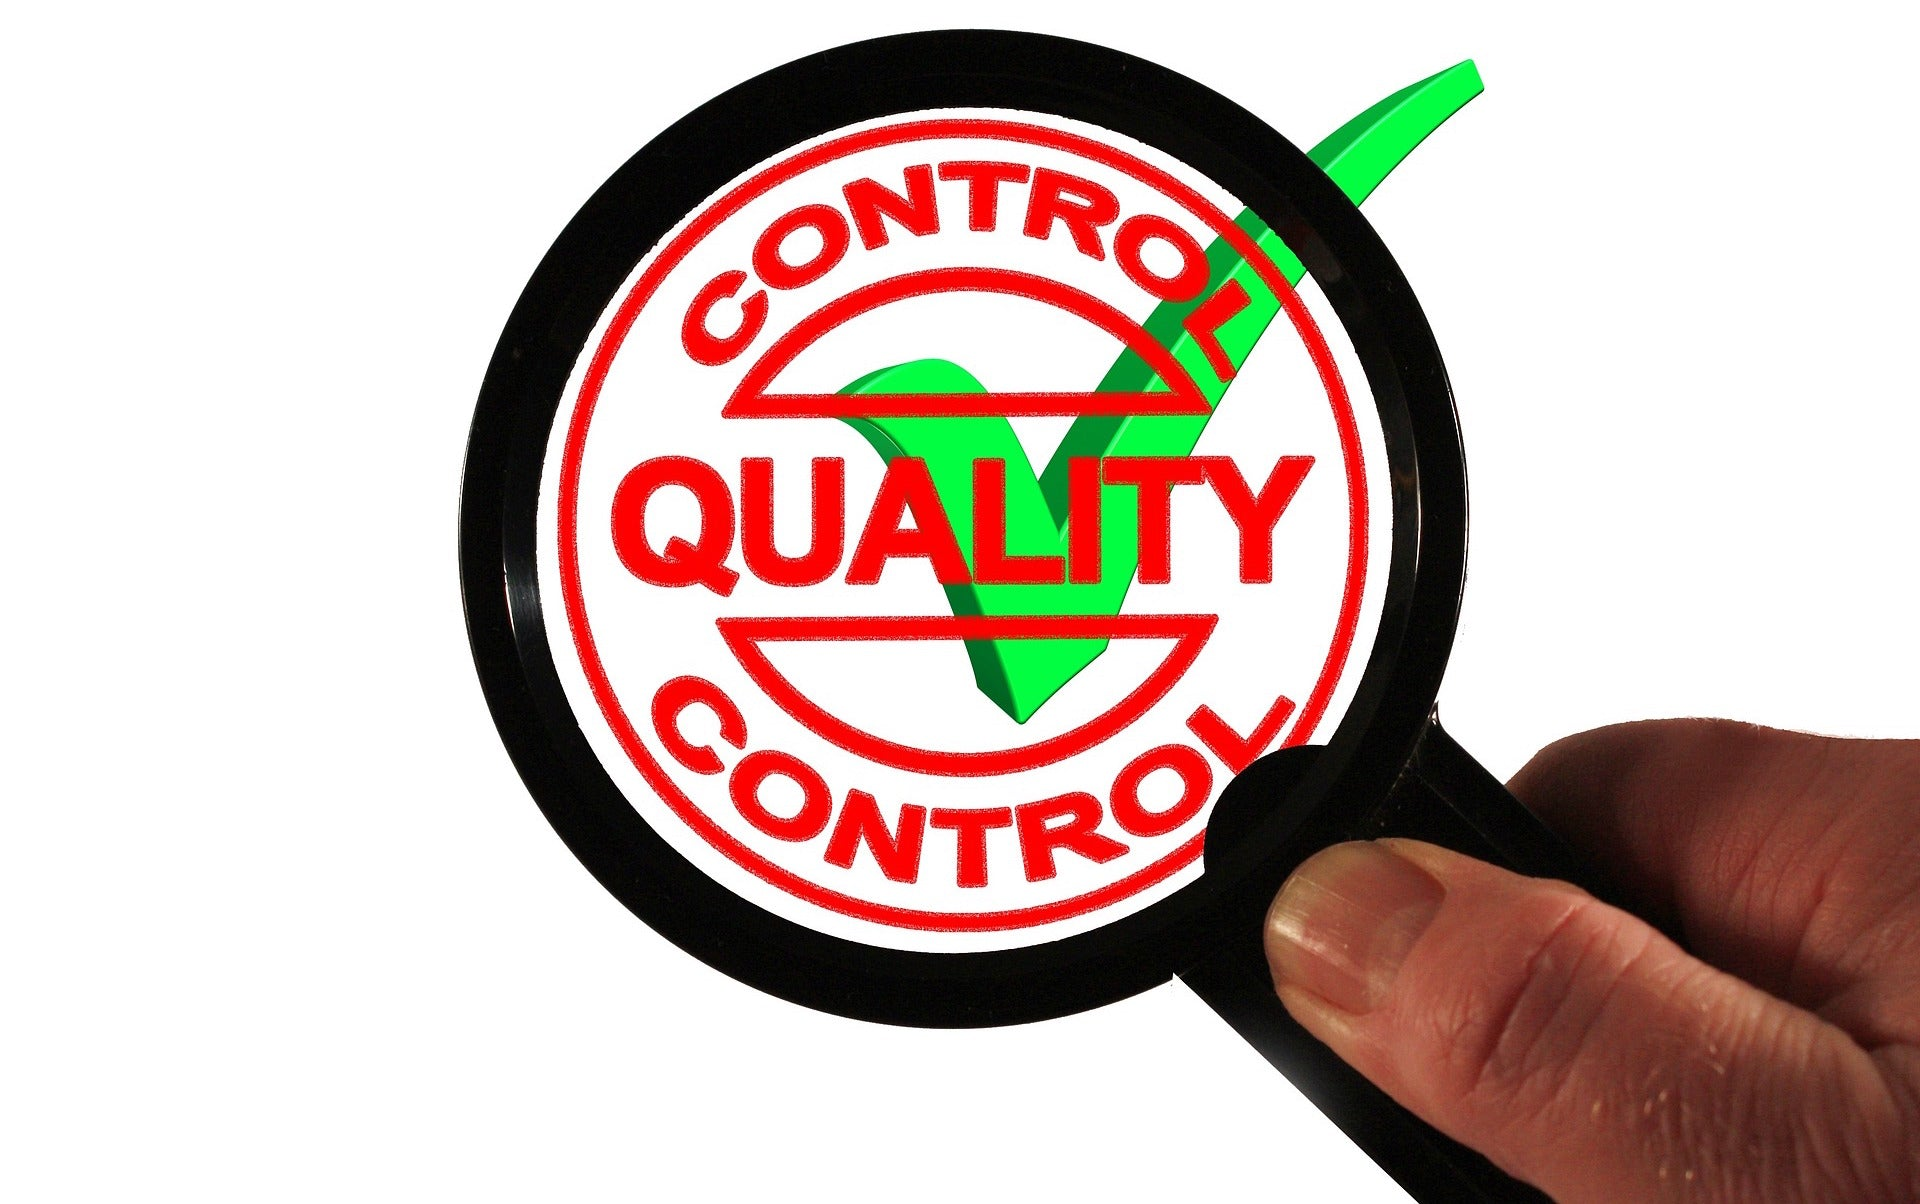 QUALITY CONTROL AND MAJOR JEWELRY RETAILERS